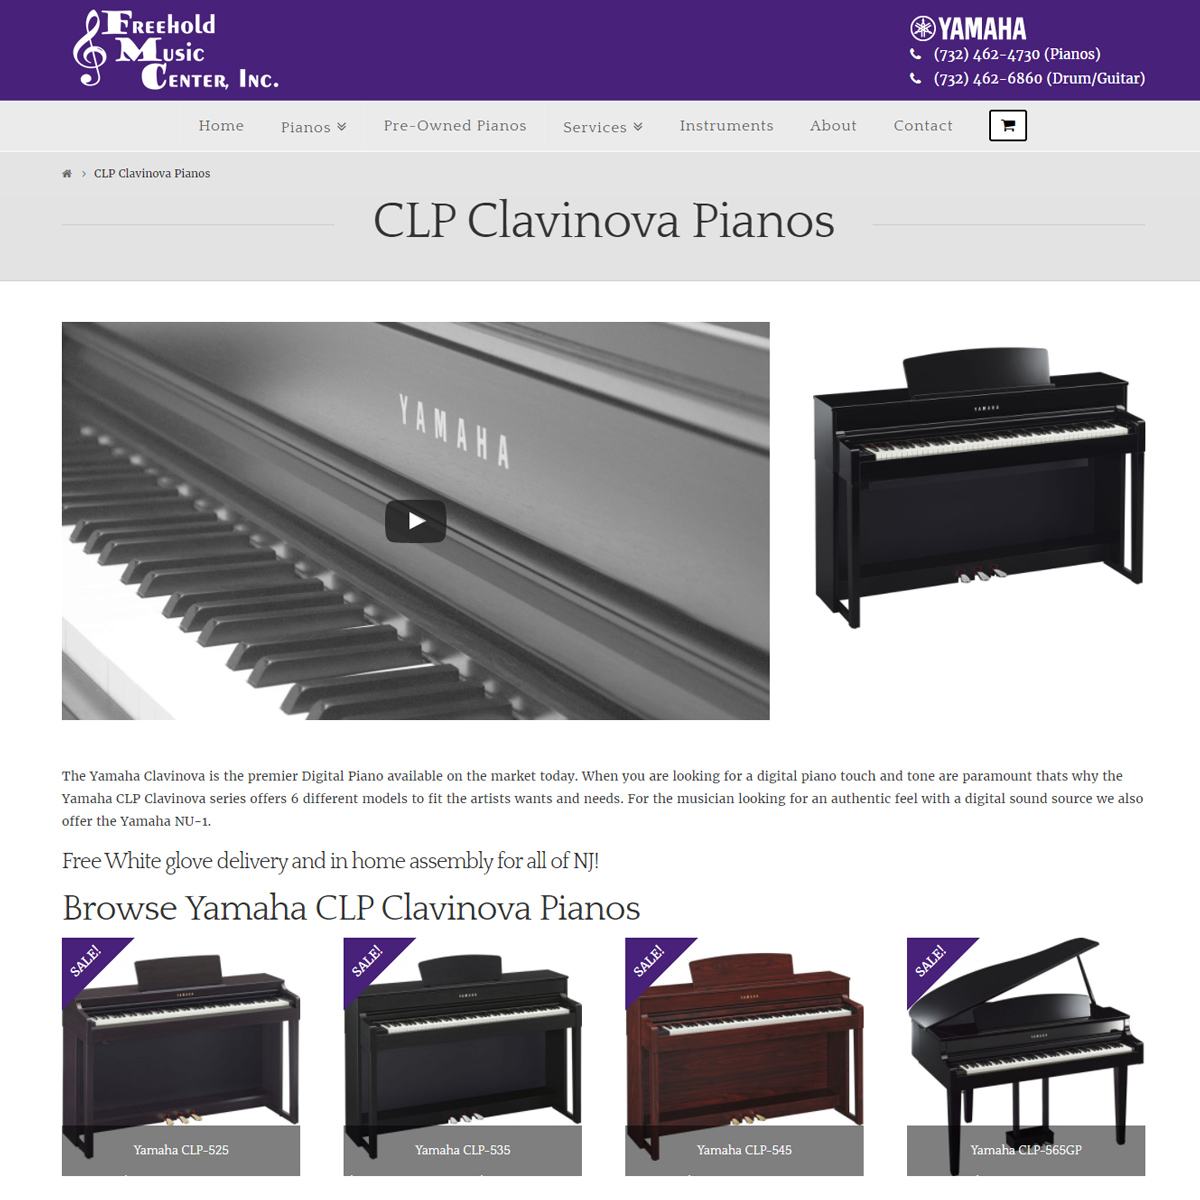 Piano Store Website Design - Yamaha Pianos